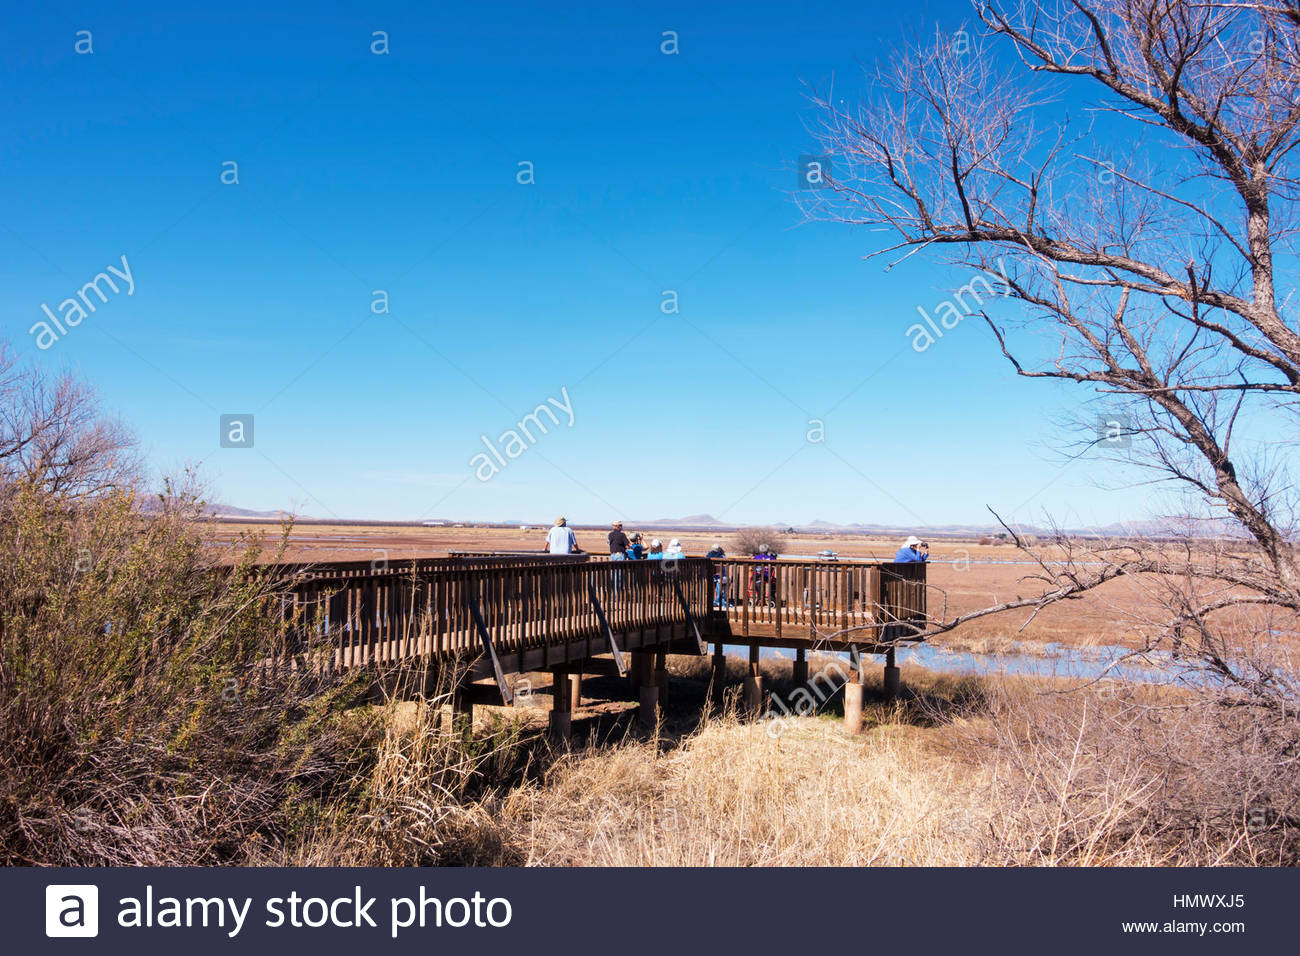 Birders on one of the observation decks at Whitewater Draw Wildlife Area in southeastern Arizona 8 people visible - Stock Image